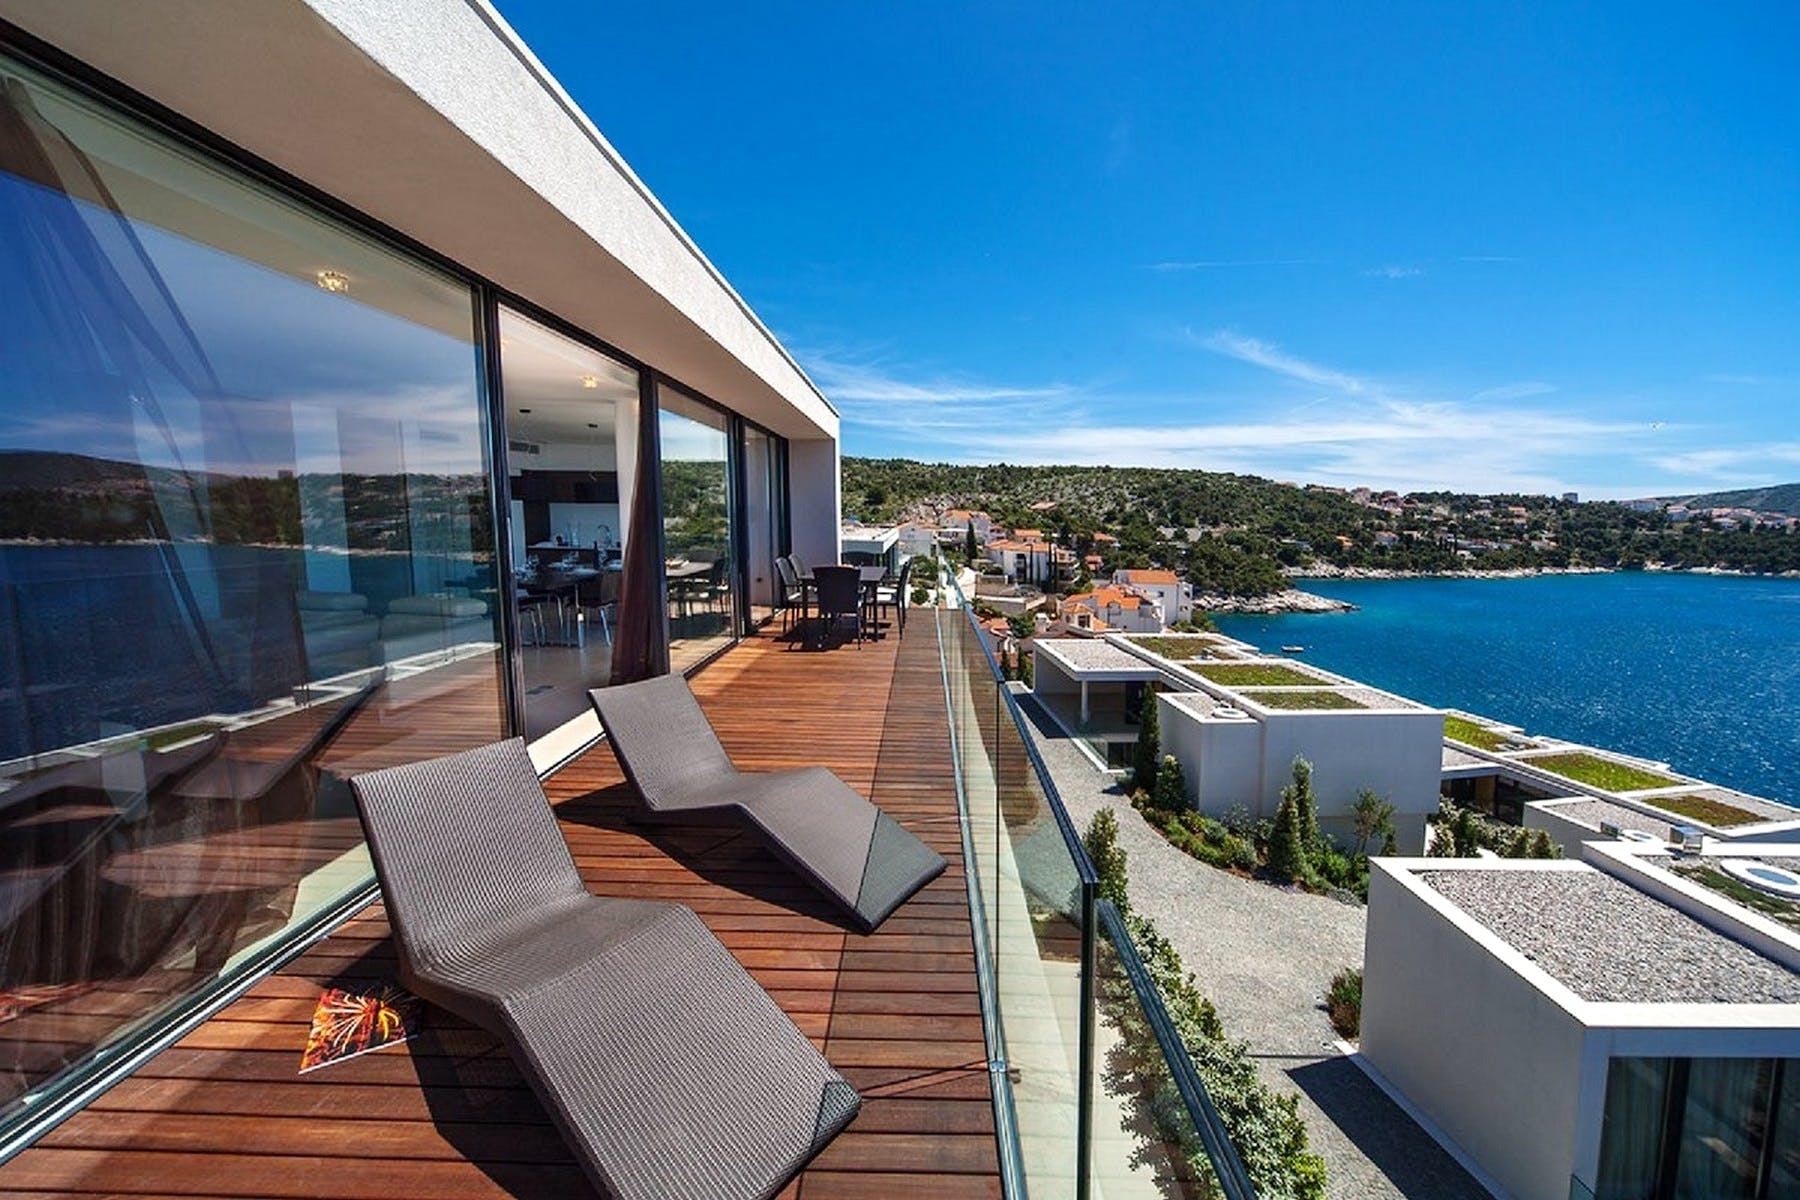 Open sea view from the villa